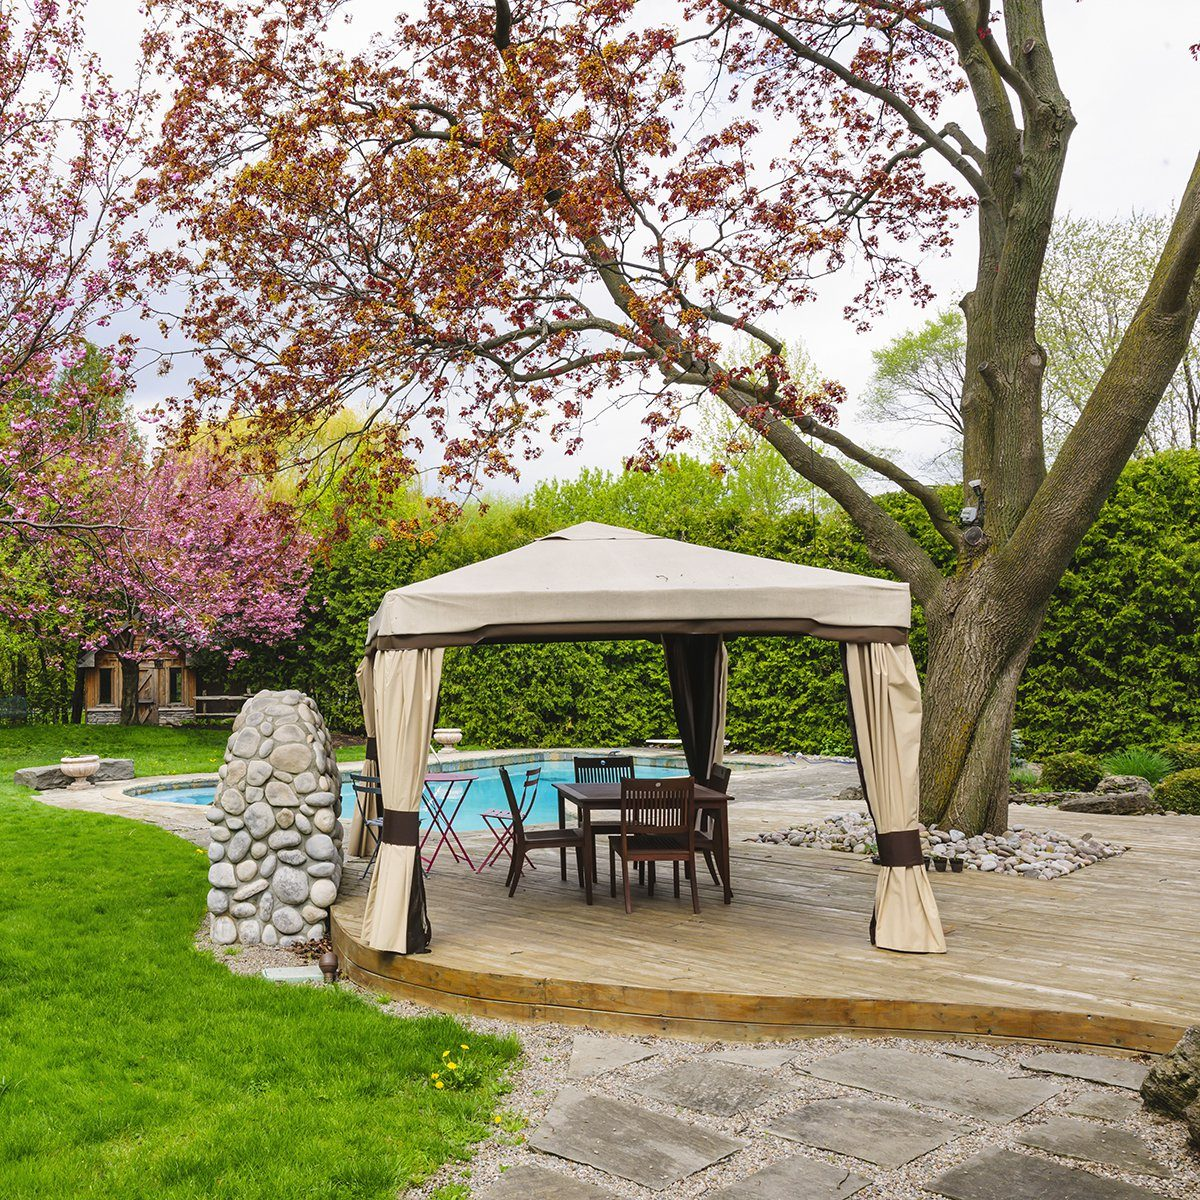 Residential backyard with gazebo, deck, stone patio and swimming pool